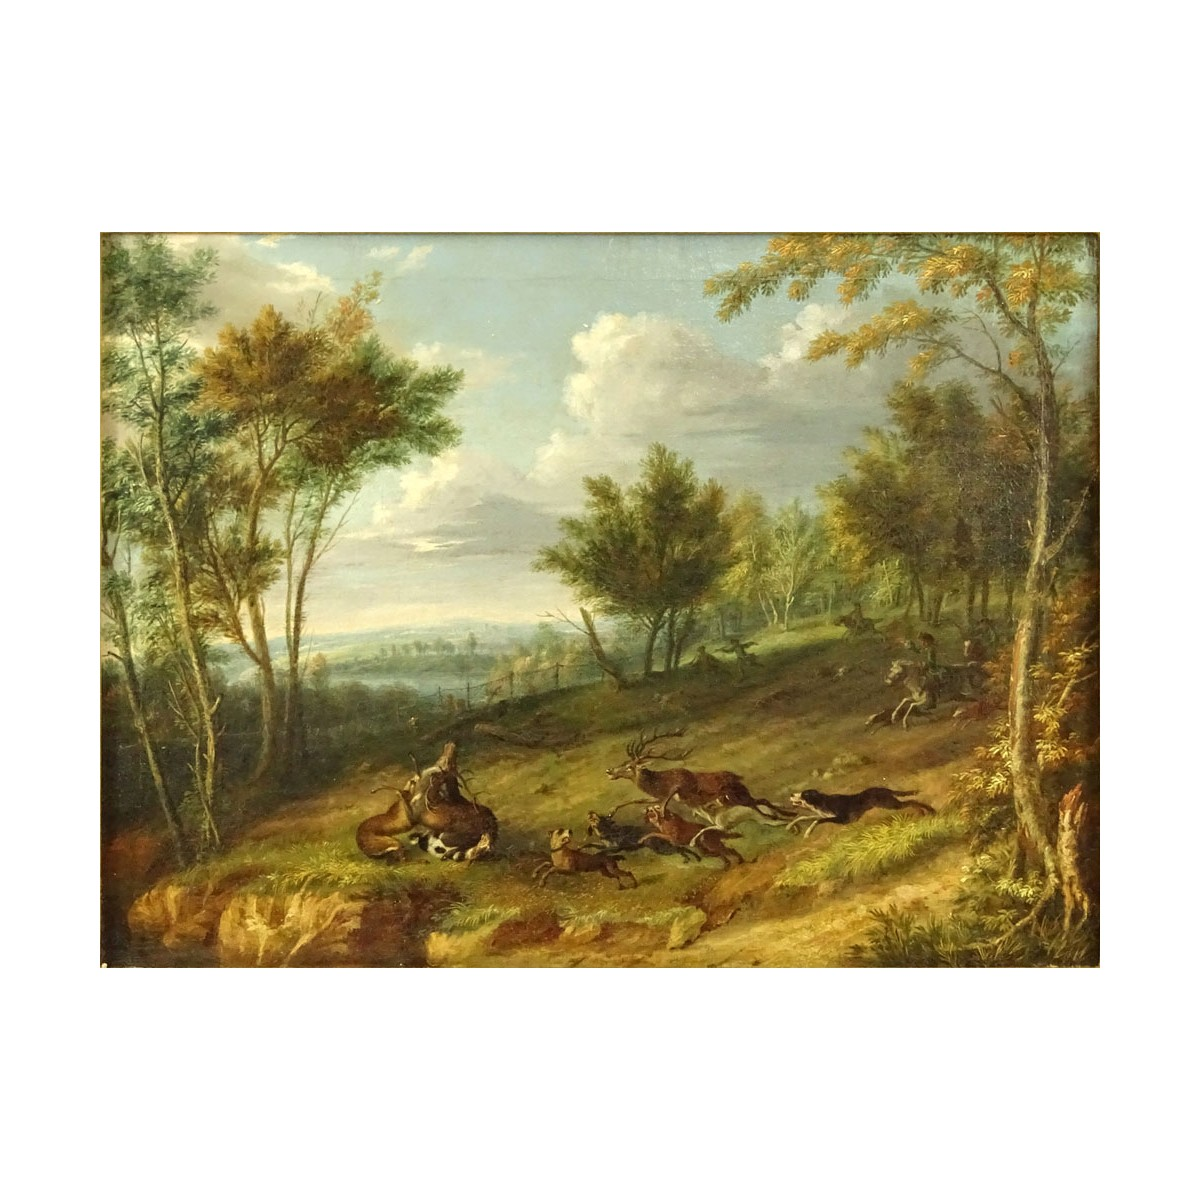 Friedrich Wilhelm Hirt, German (1721-1772) Oil on Canvas, Stag Hunt. Unsigned. Very good conserved